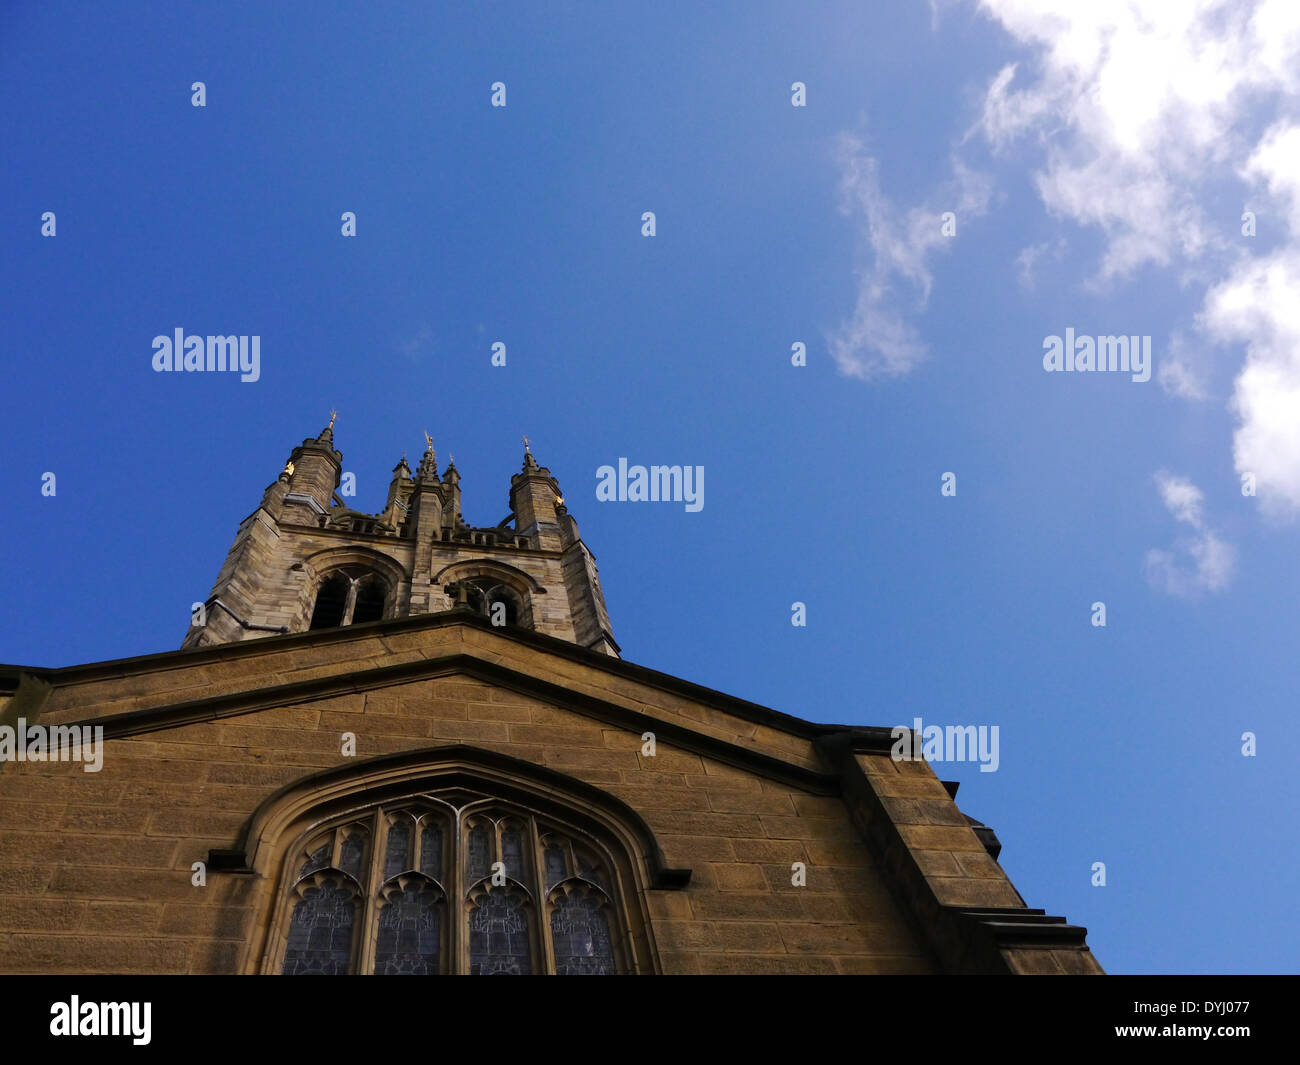 Creative view of 900 year old St. Nicholas Cathedral, Newcastle upon Tyne, England, UK - Stock Image